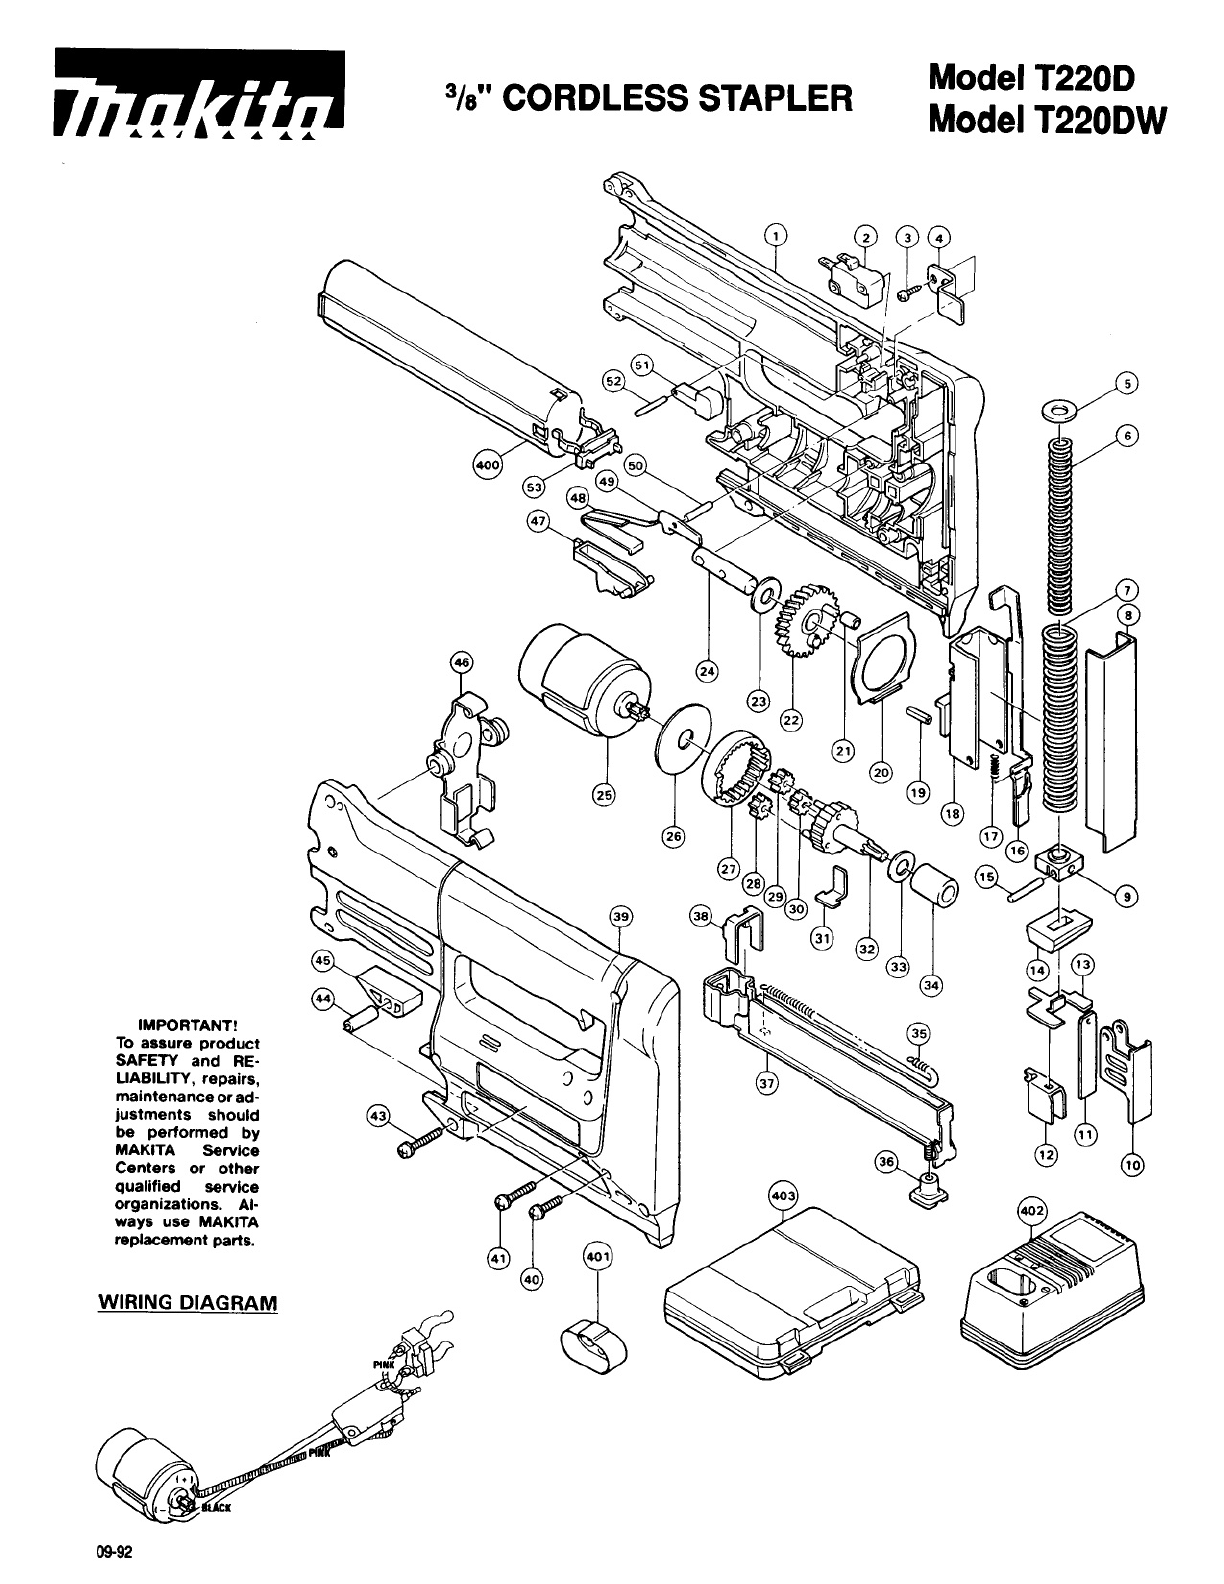 aa1d3b4a 174d 49e8 9443 23e2575fbc36 bg1 makita wiring diagram wiring diagrams makita mlt100 wiring diagram at alyssarenee.co